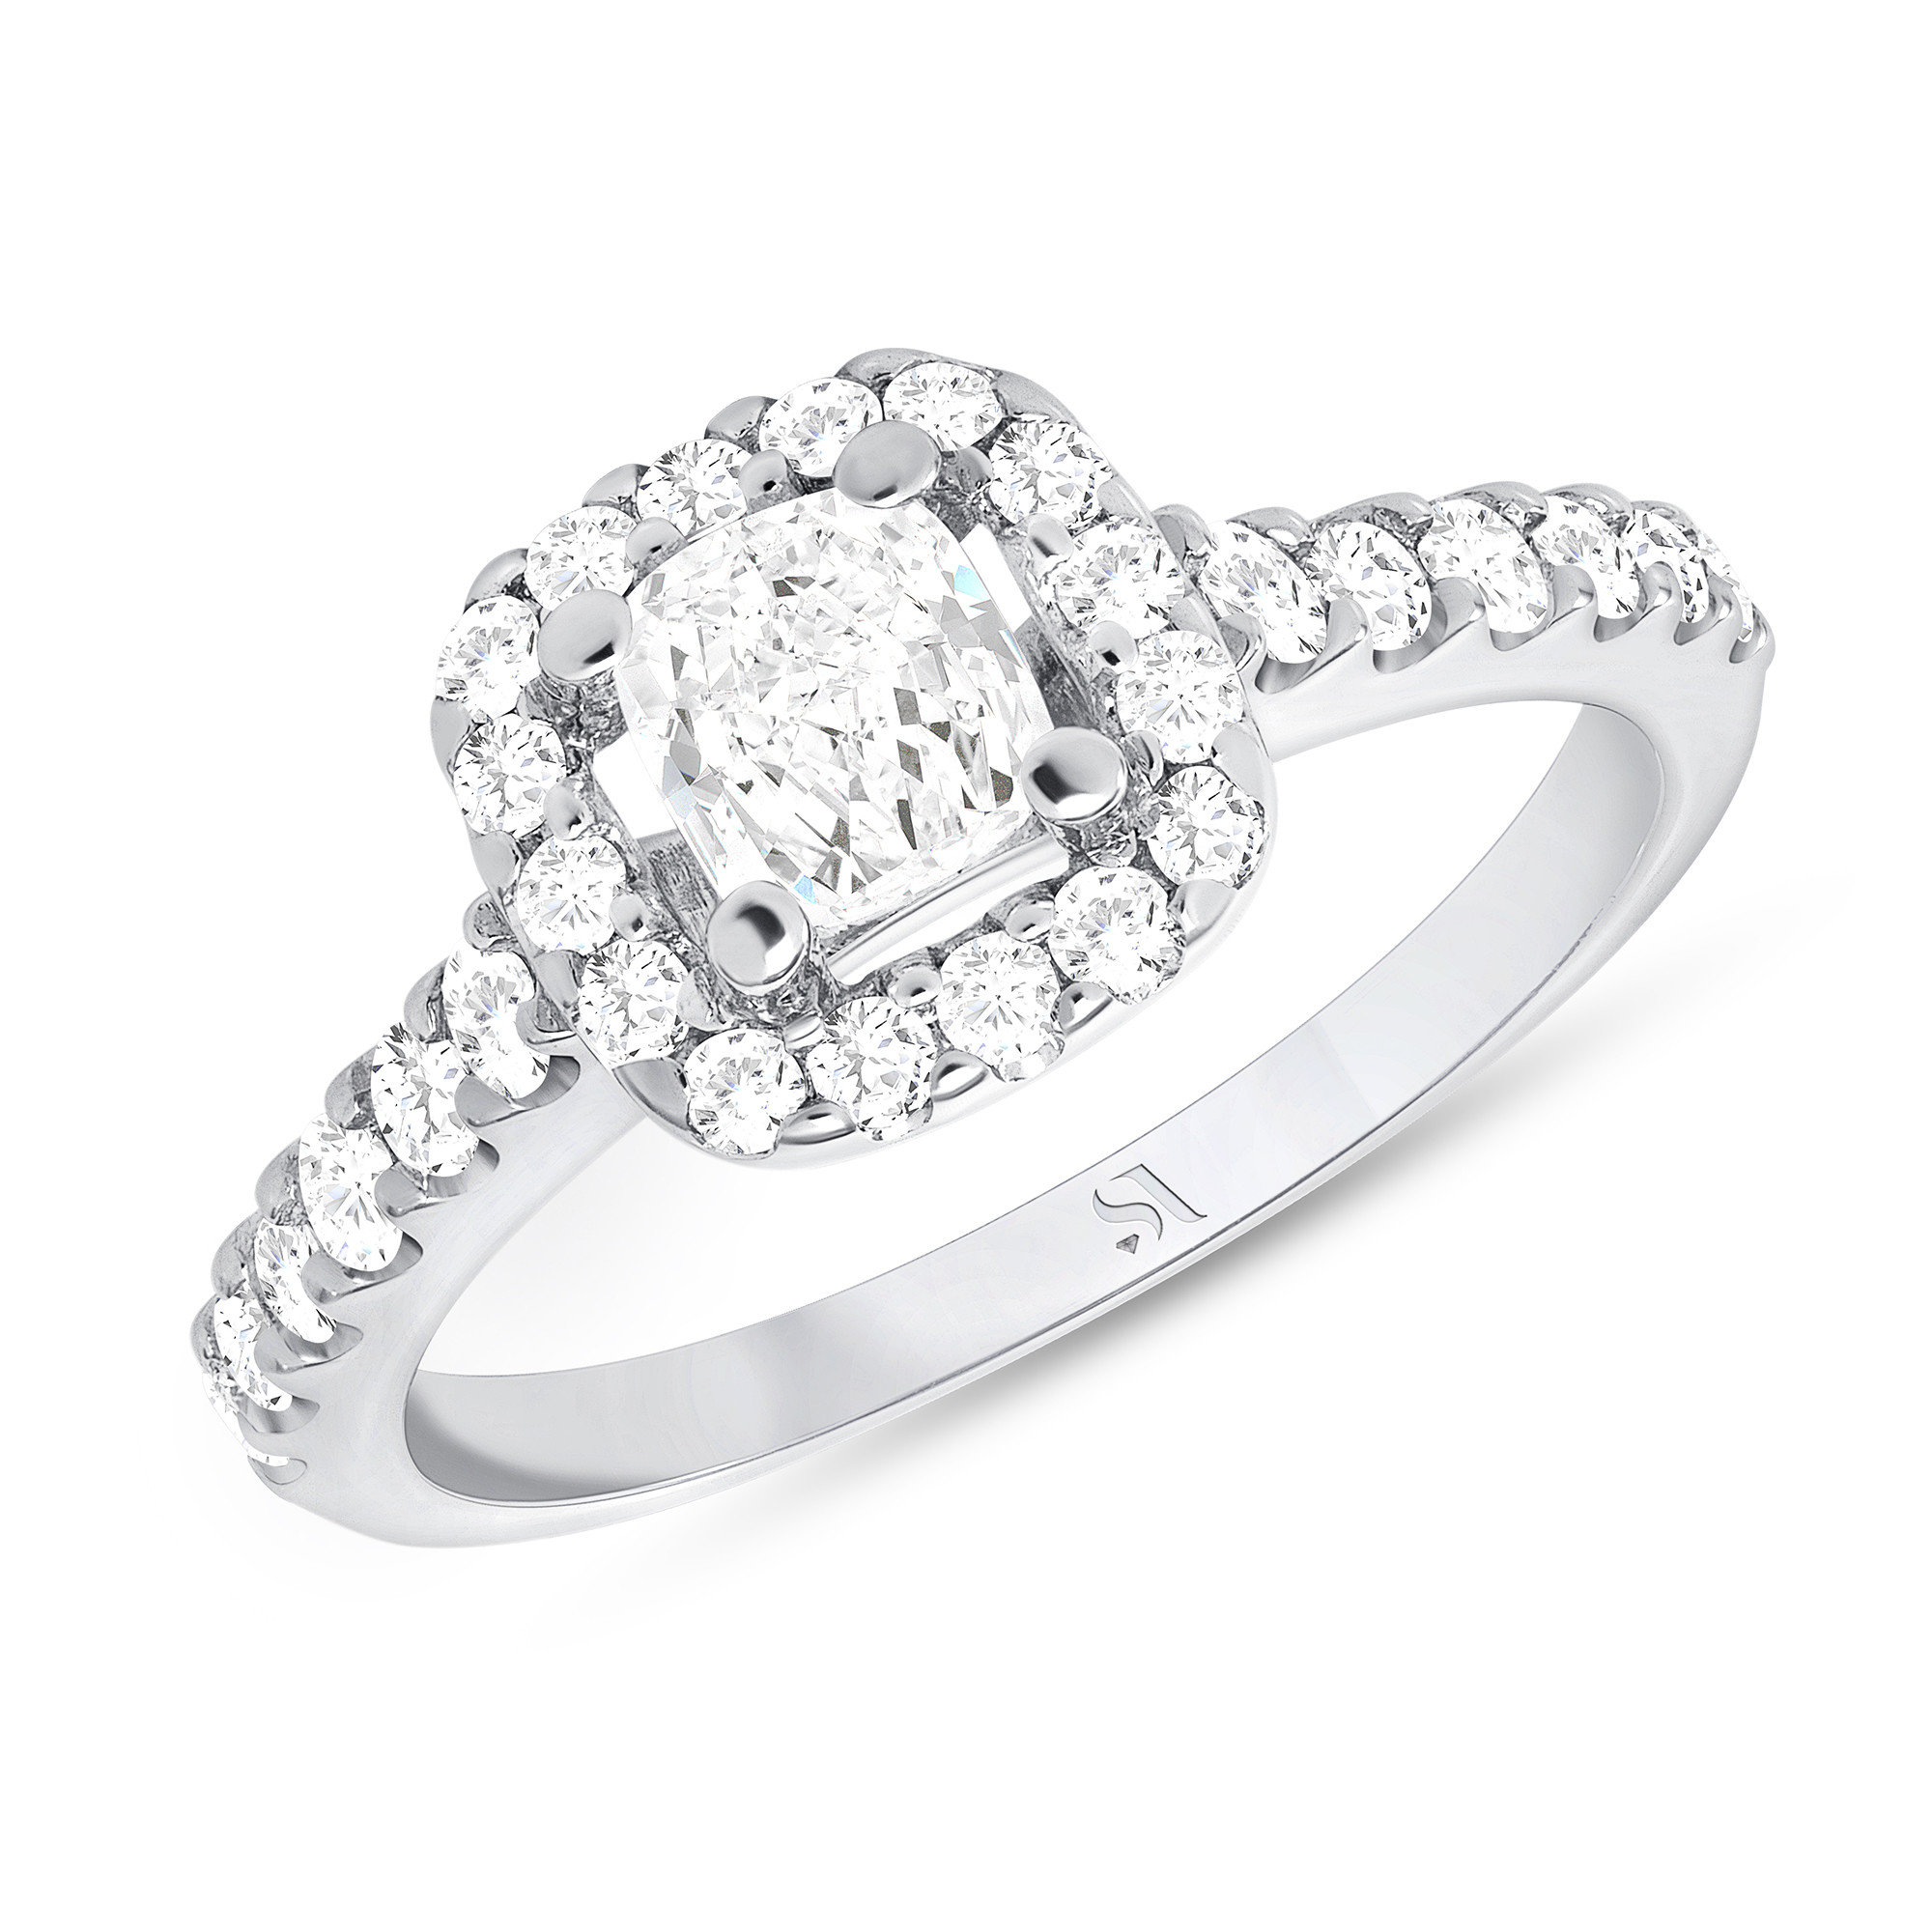 Cushion Cut Diamond Halo Engagement Ring | Sabrina A Inc